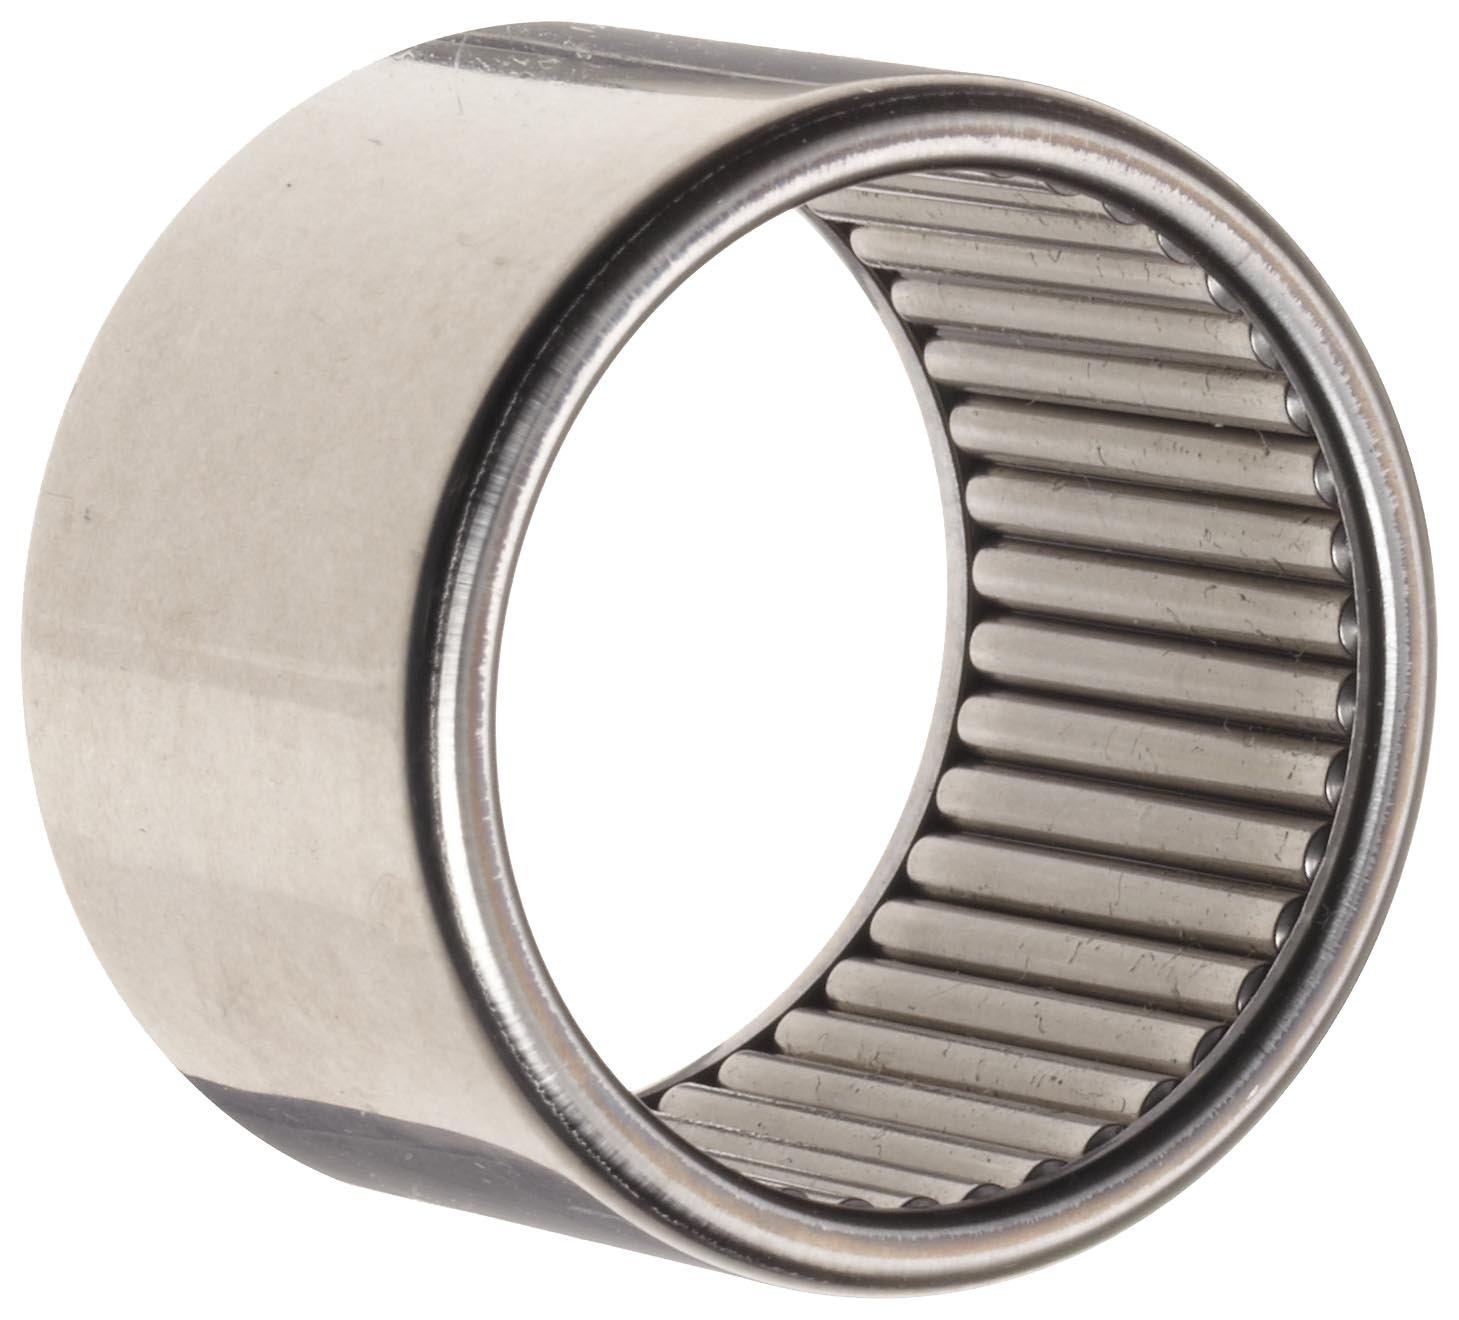 Koyo B-1516 Needle Roller Bearing, Full Complement Drawn Cup, Open, Inch, 15/16